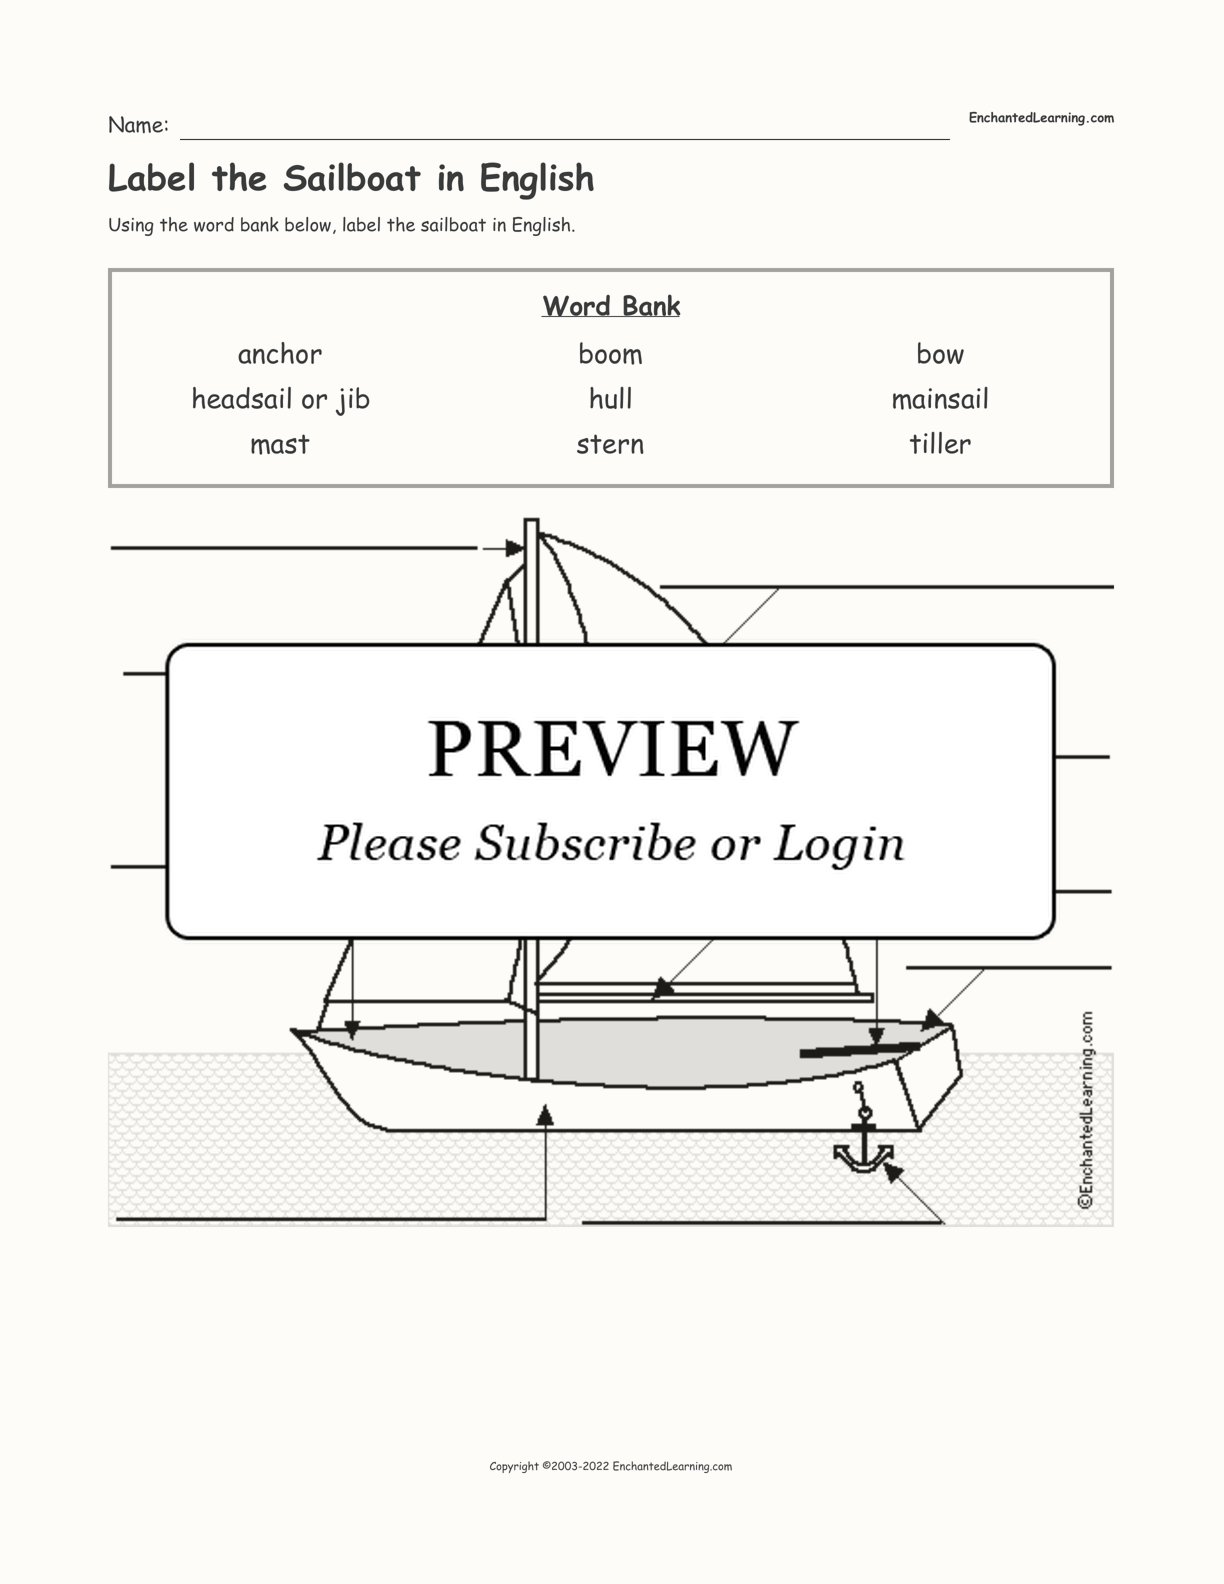 Label the Sailboat in English interactive worksheet page 1